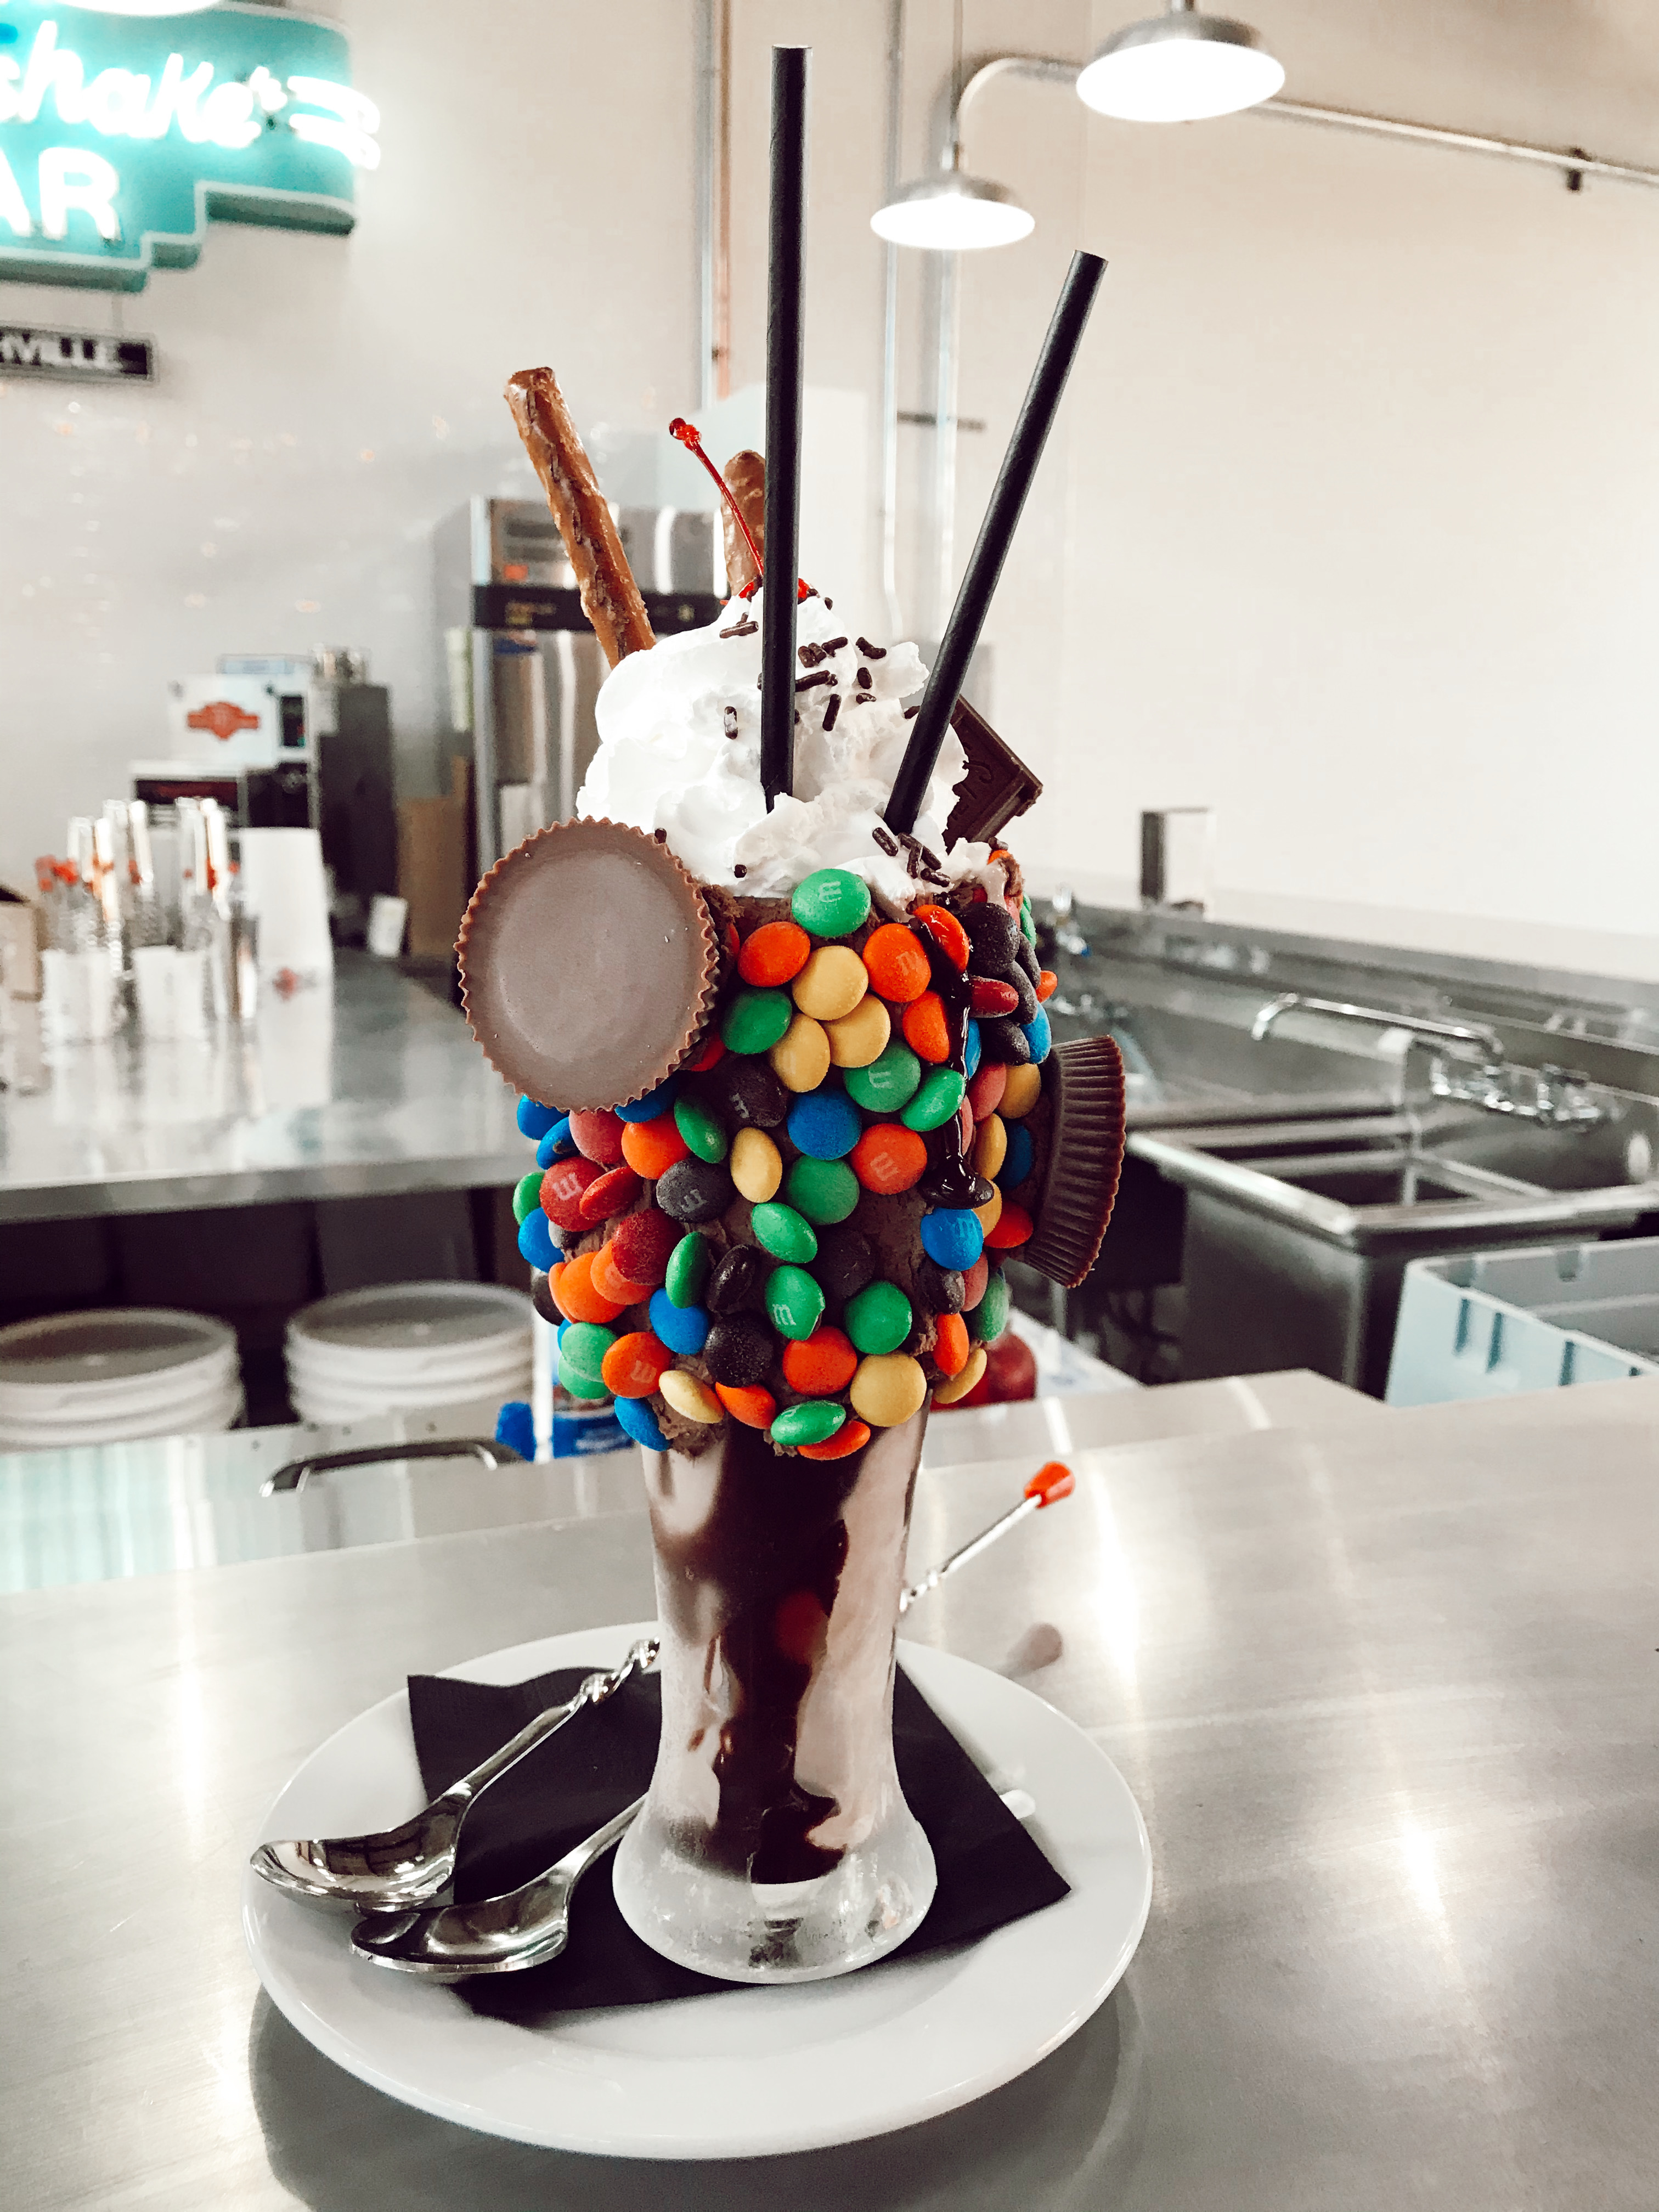 a milkshake in a glass cup covered with brightly colored candy, peanut butter cups, and whipped cream